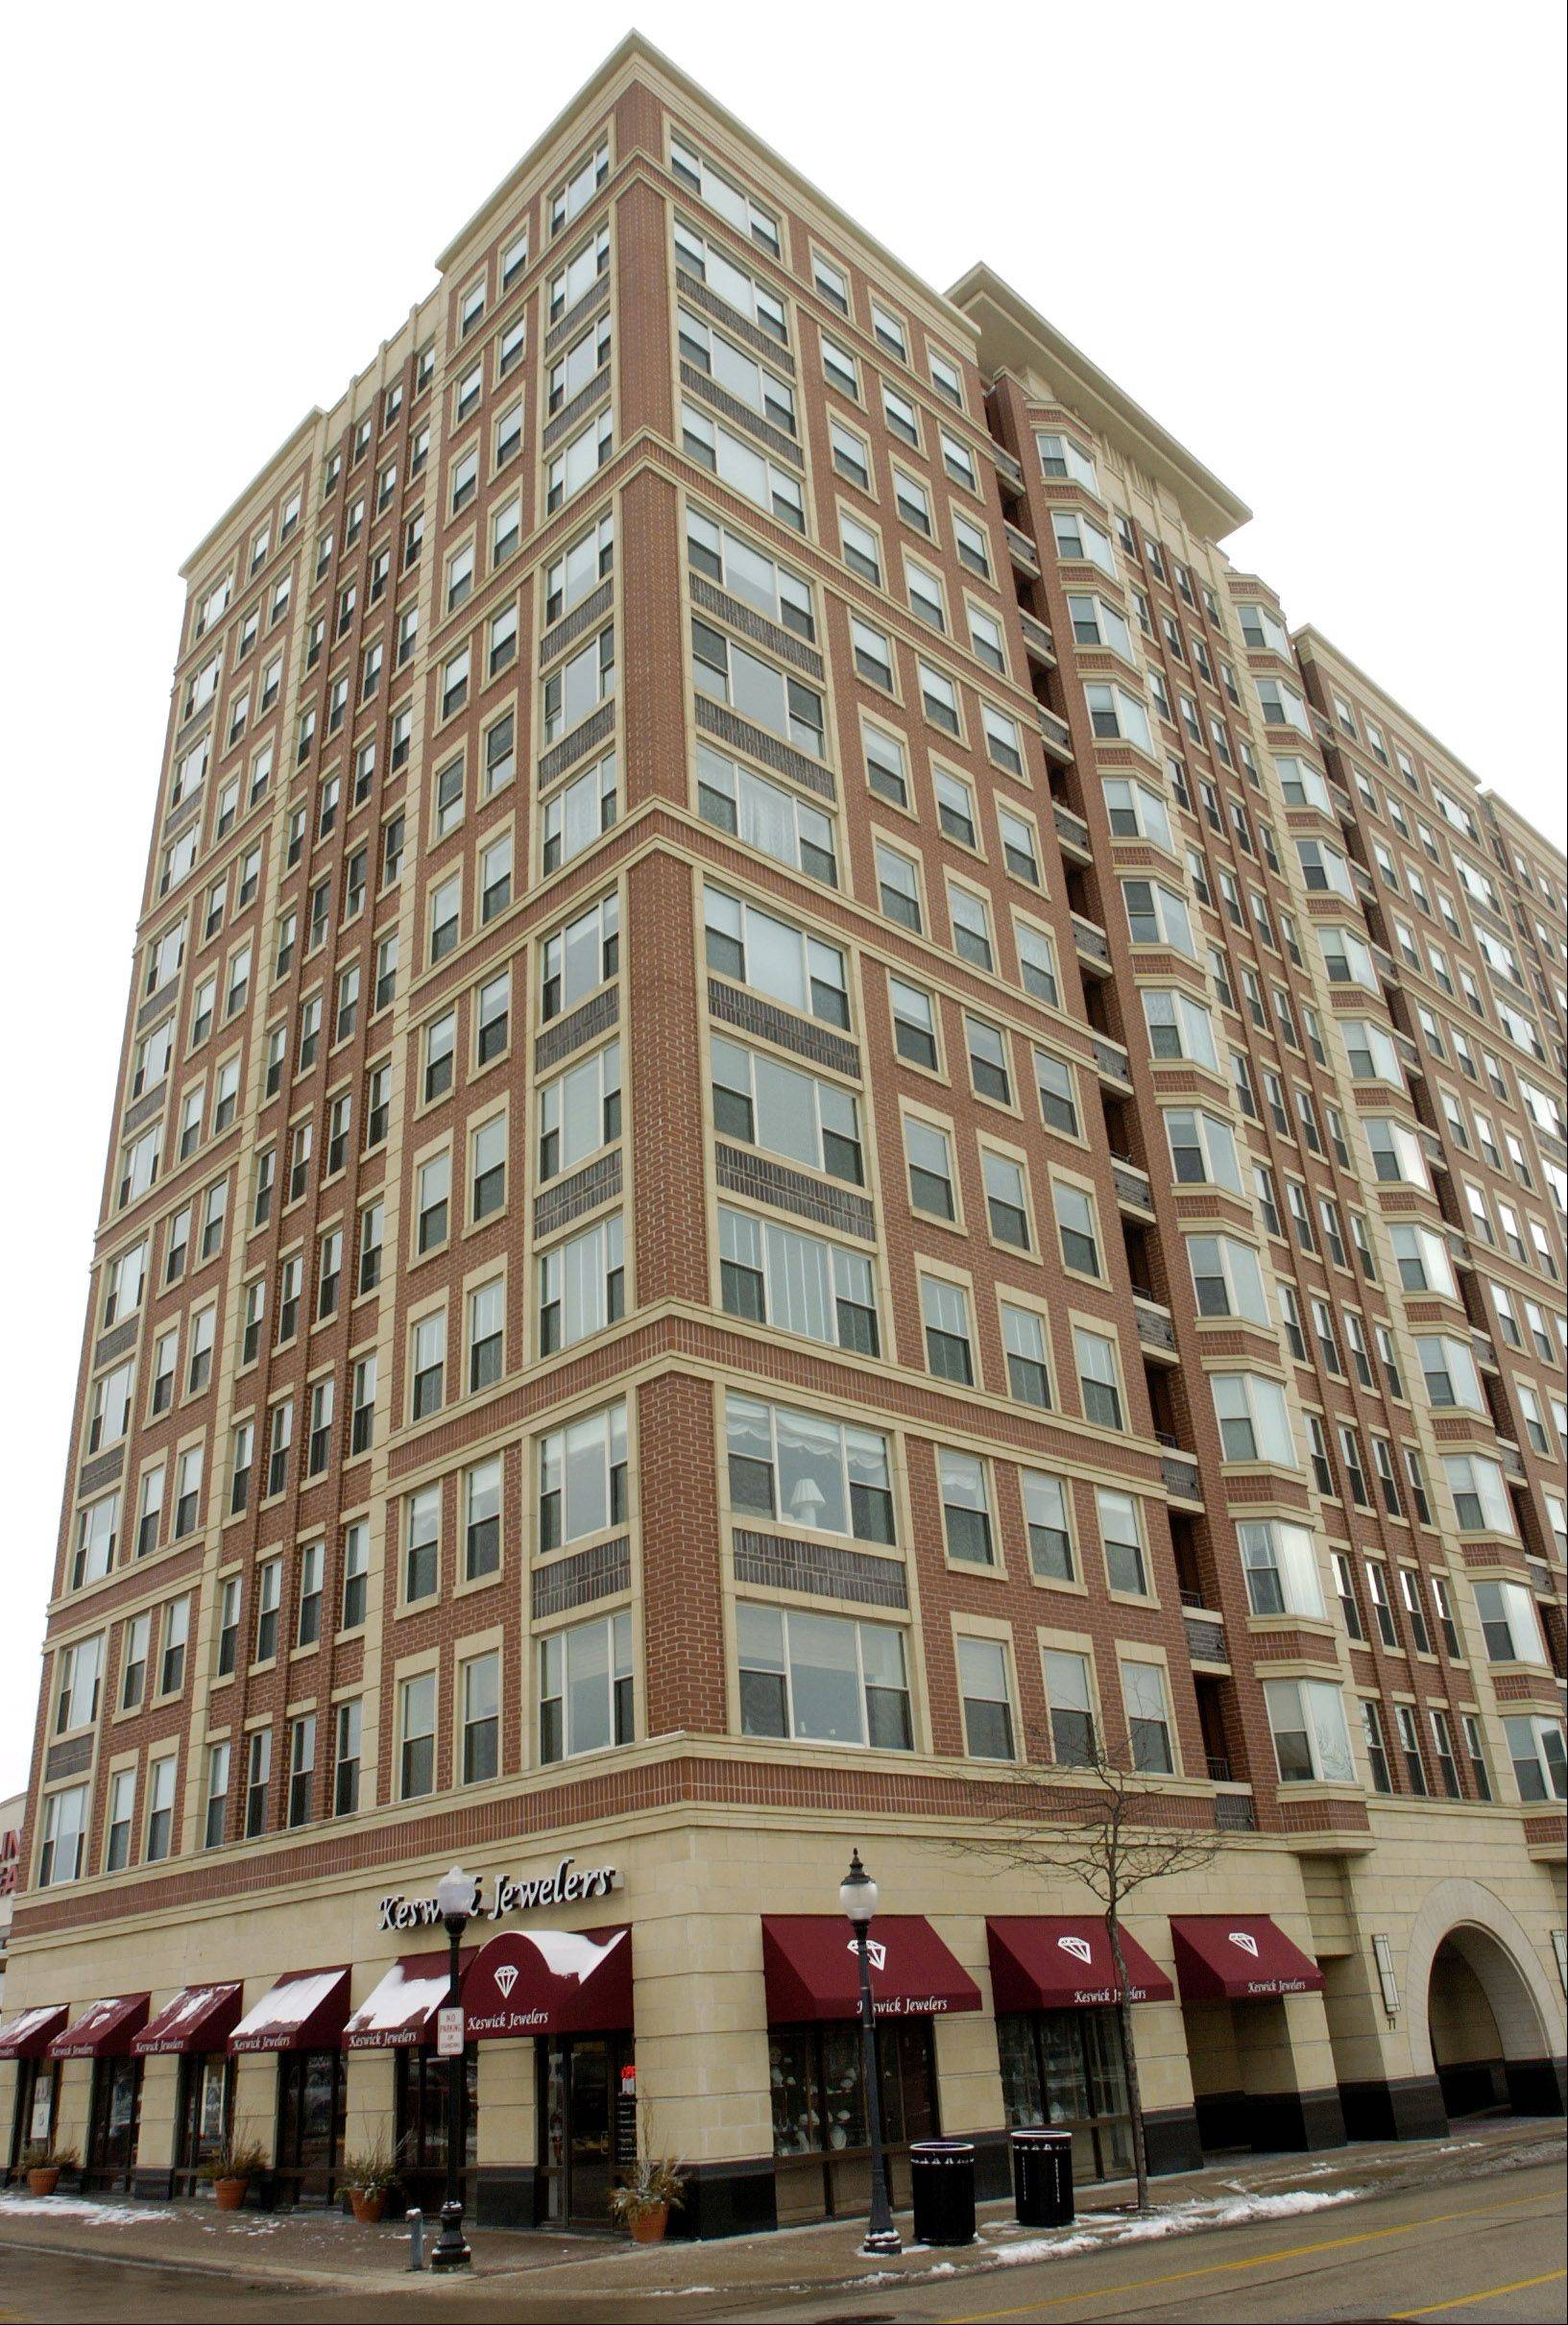 The Evergreen building, 77 S. Evergreen Ave., is one of several mid-rise condo buildings in downtown Arlington Heights.